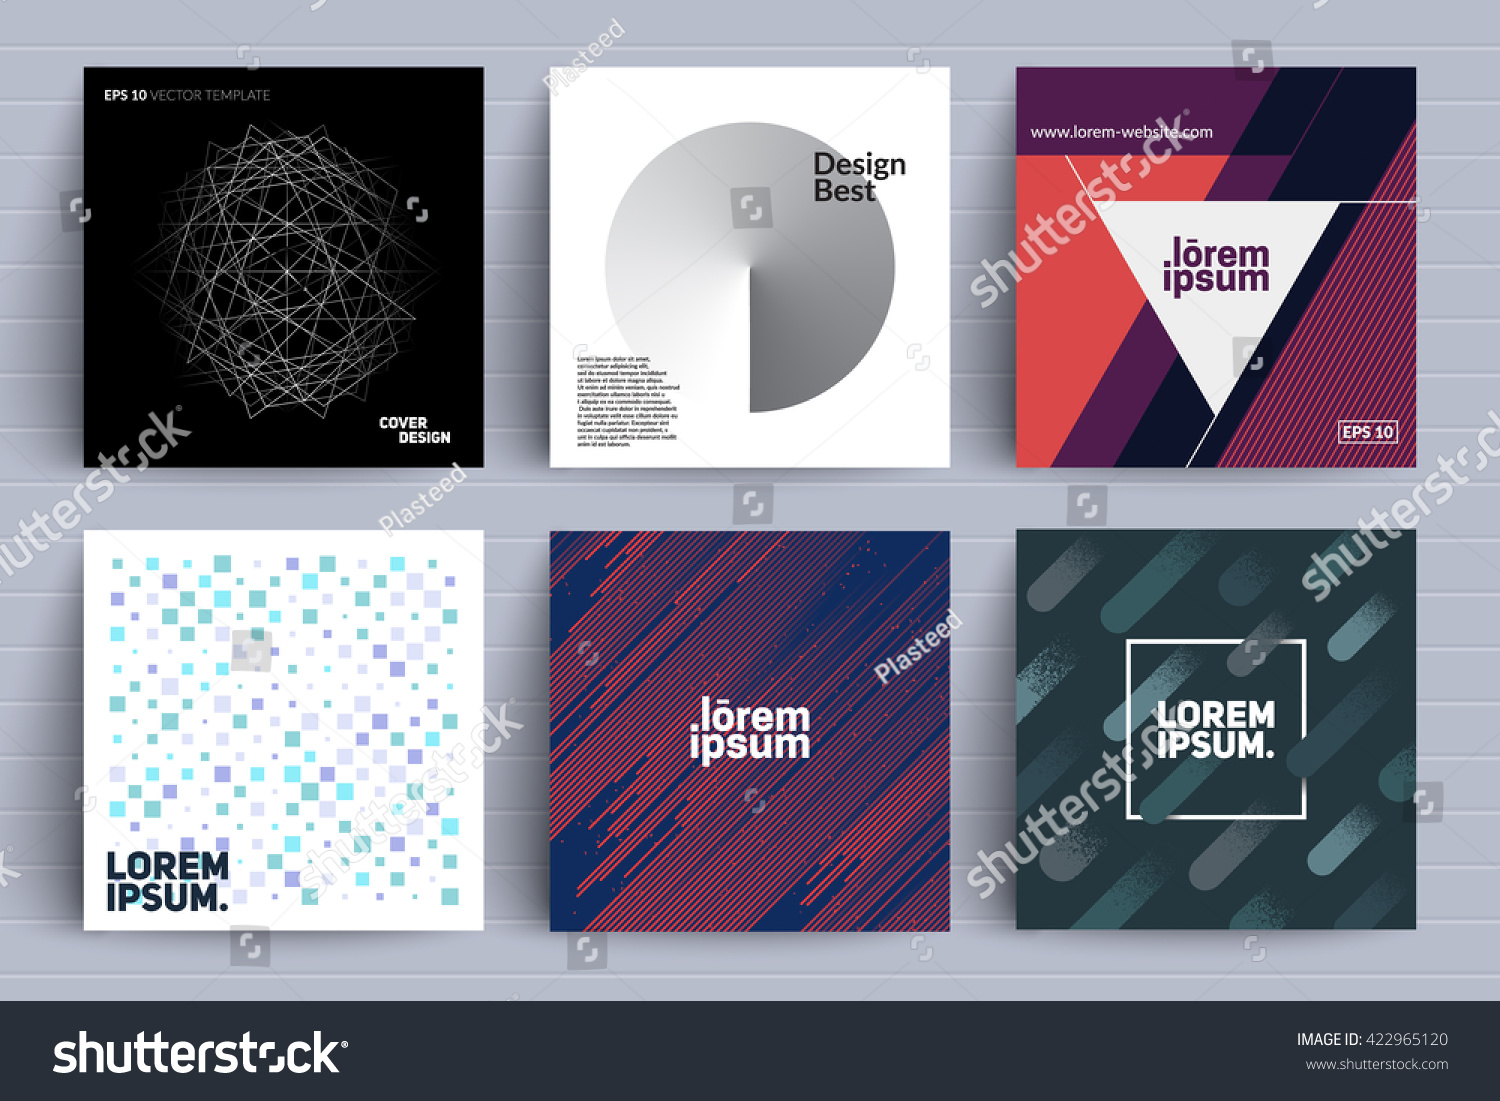 Trendy Poster Designs: Set Backgrounds Trendy Design Applicable Covers Stock